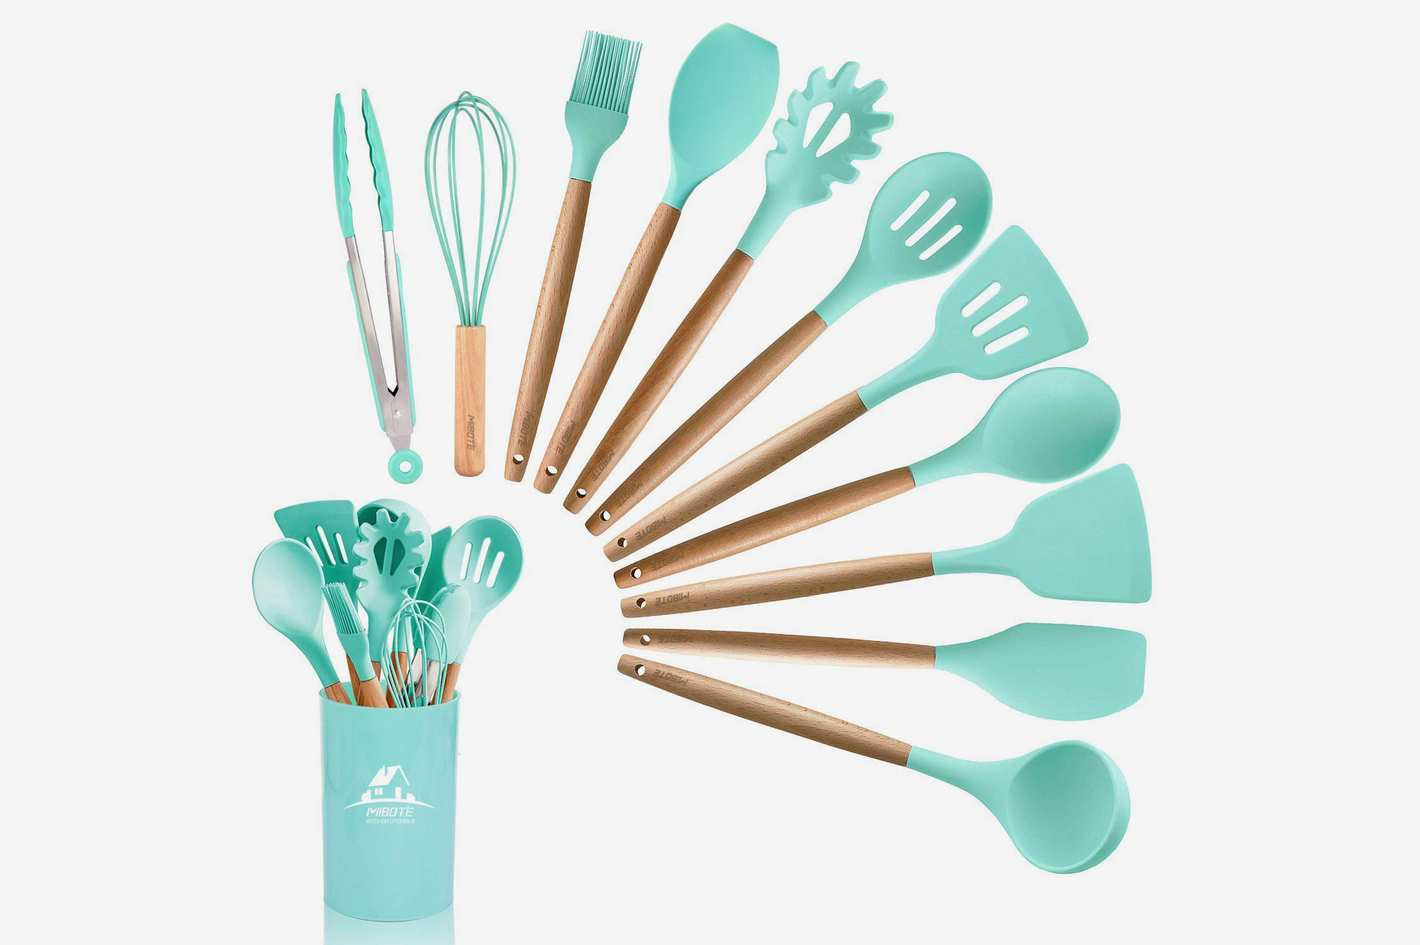 MIBOTE 12 Pcs Silicone Cooking Kitchen Utensils Set With Holder